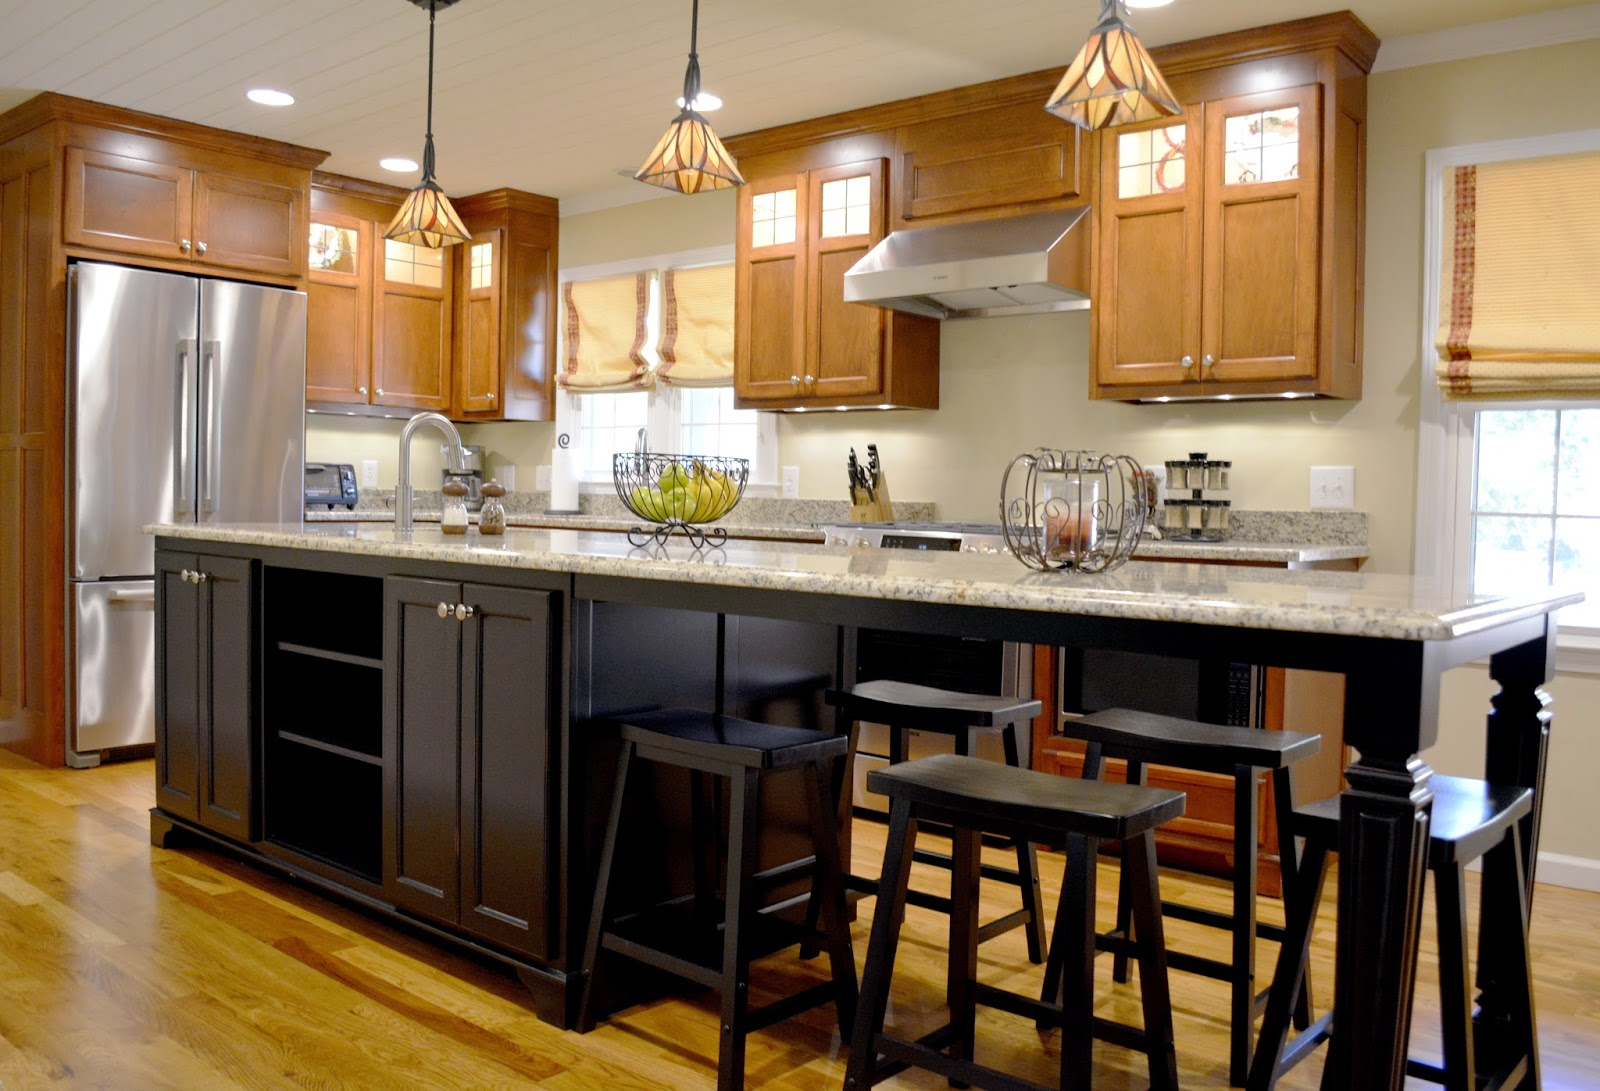 long kitchen island with seating on wheels learn more at 2 bp blogspot